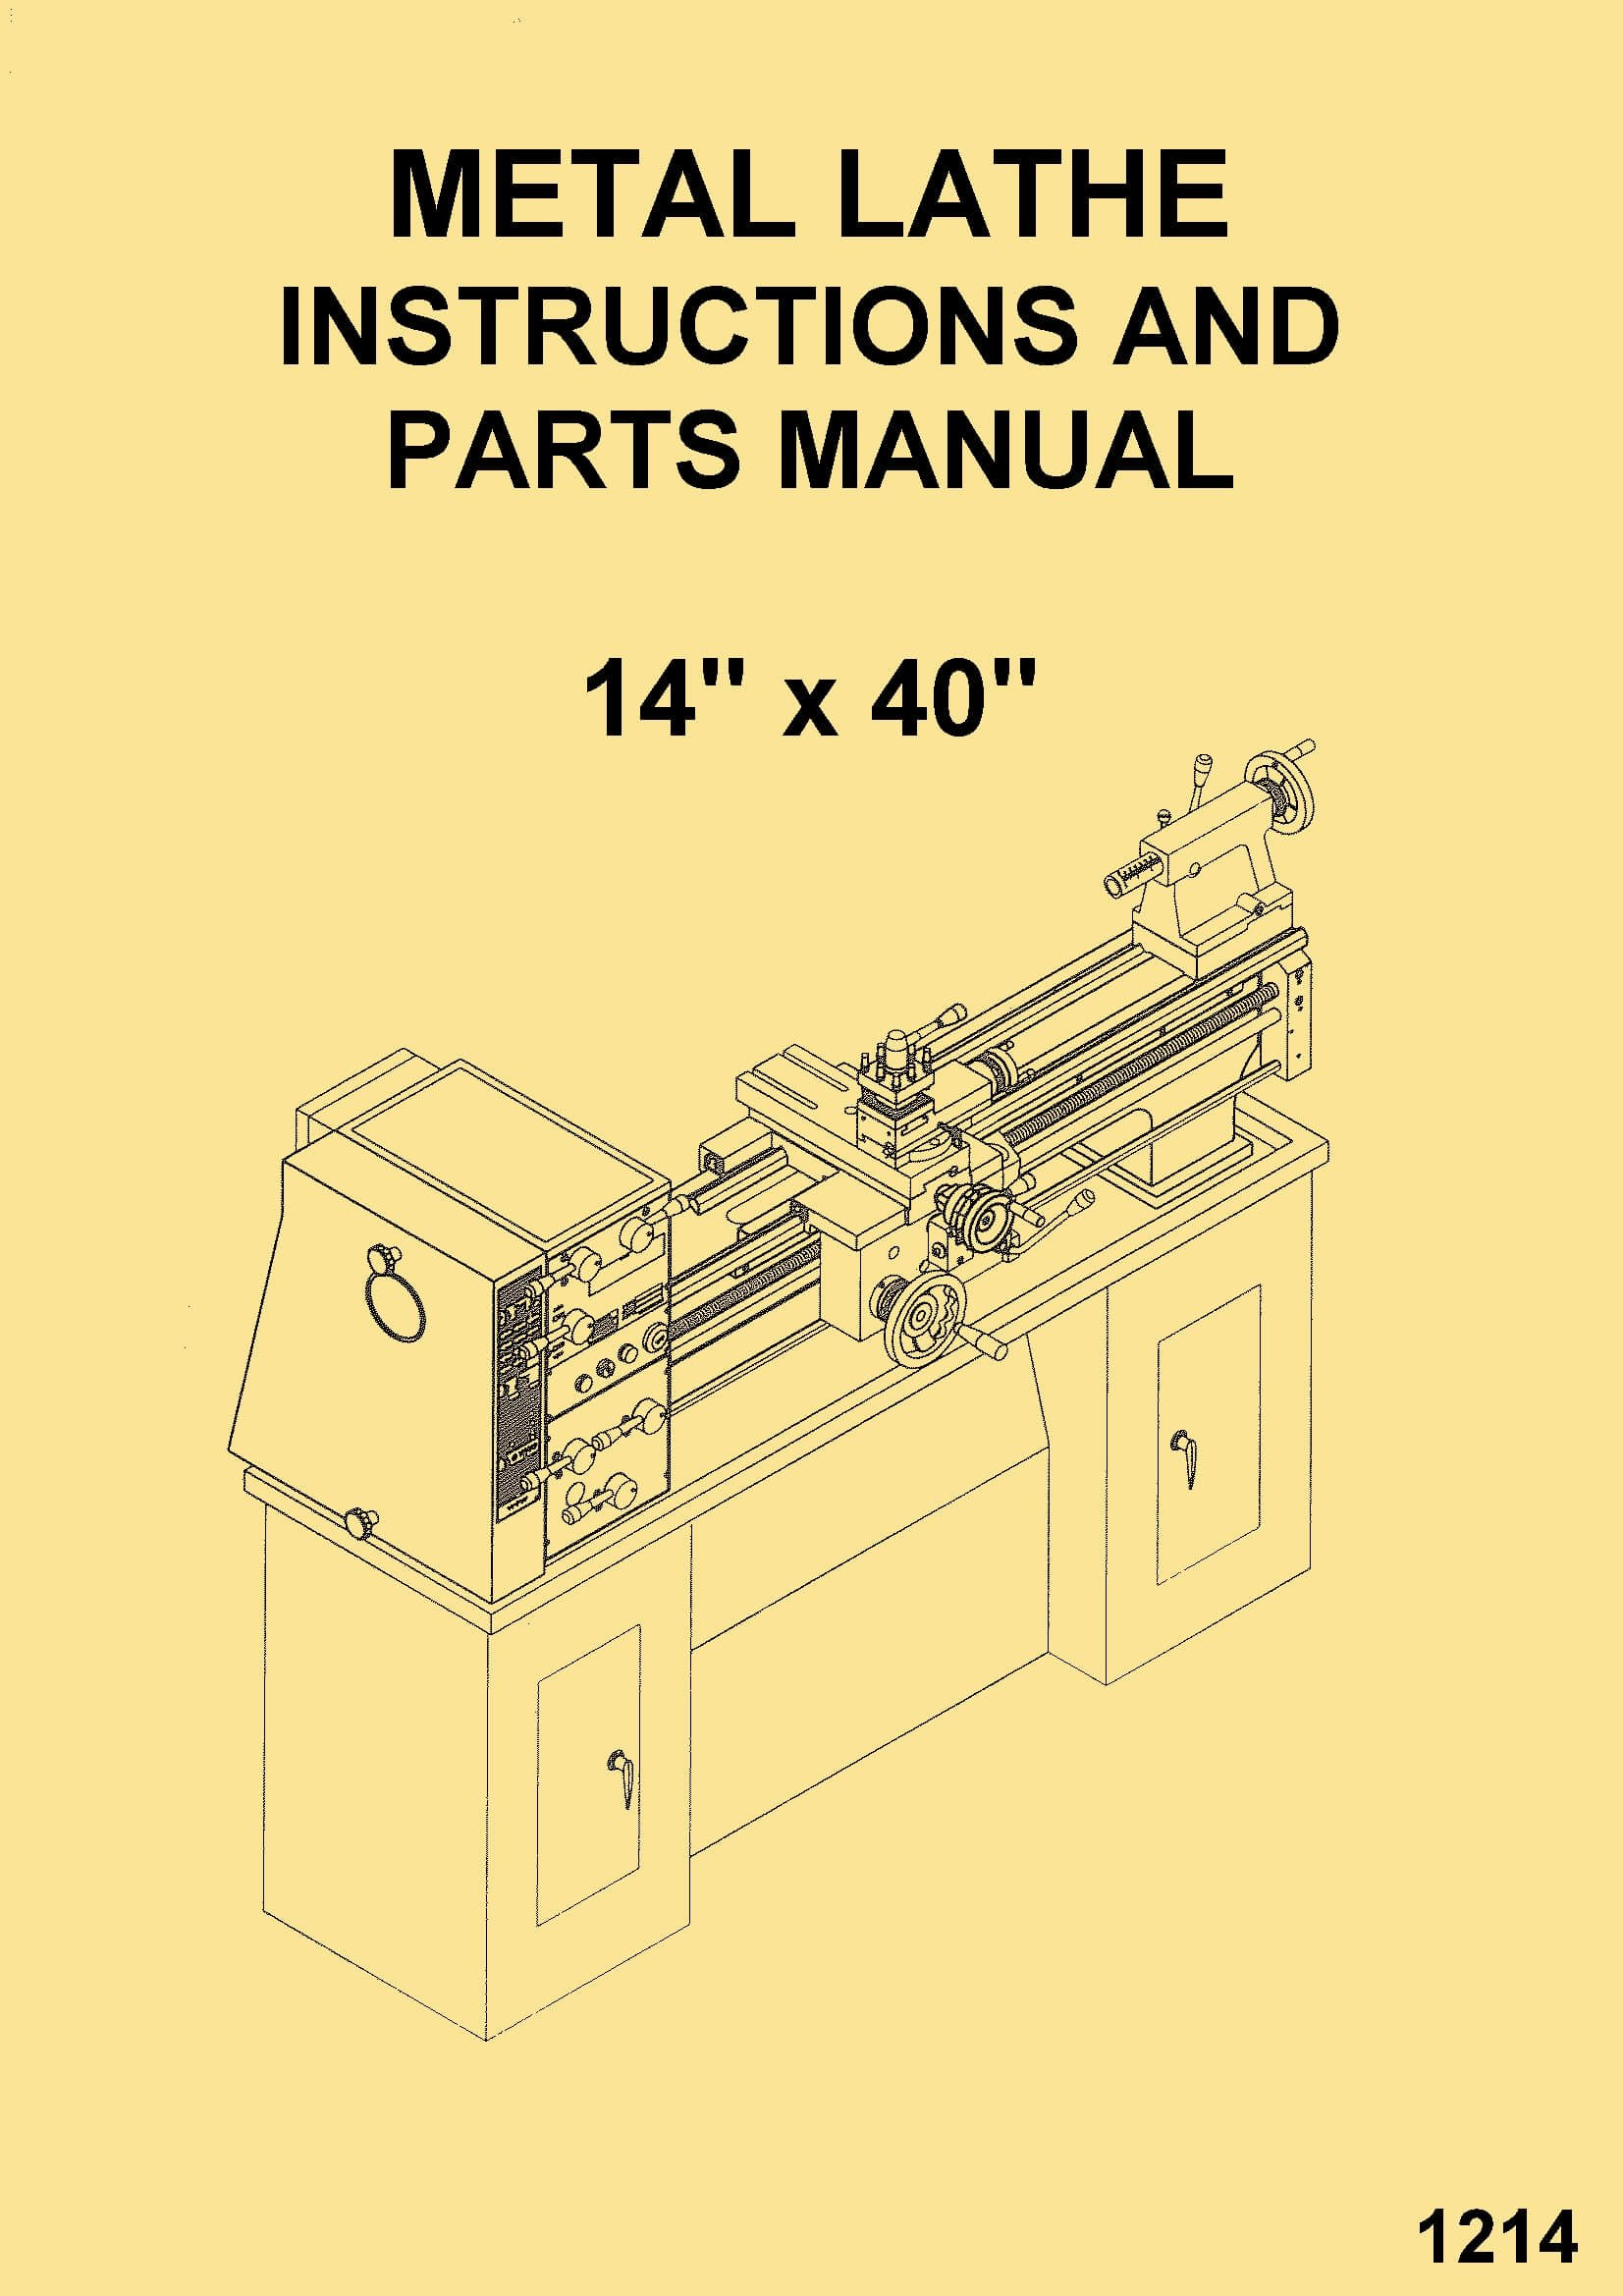 Turn-Pro Enco-JET-Asian 14x40 Metal Lathes 328-6153 328-6135 Instructions  Operator's & Parts Manual: Misc.: Amazon.com: Books